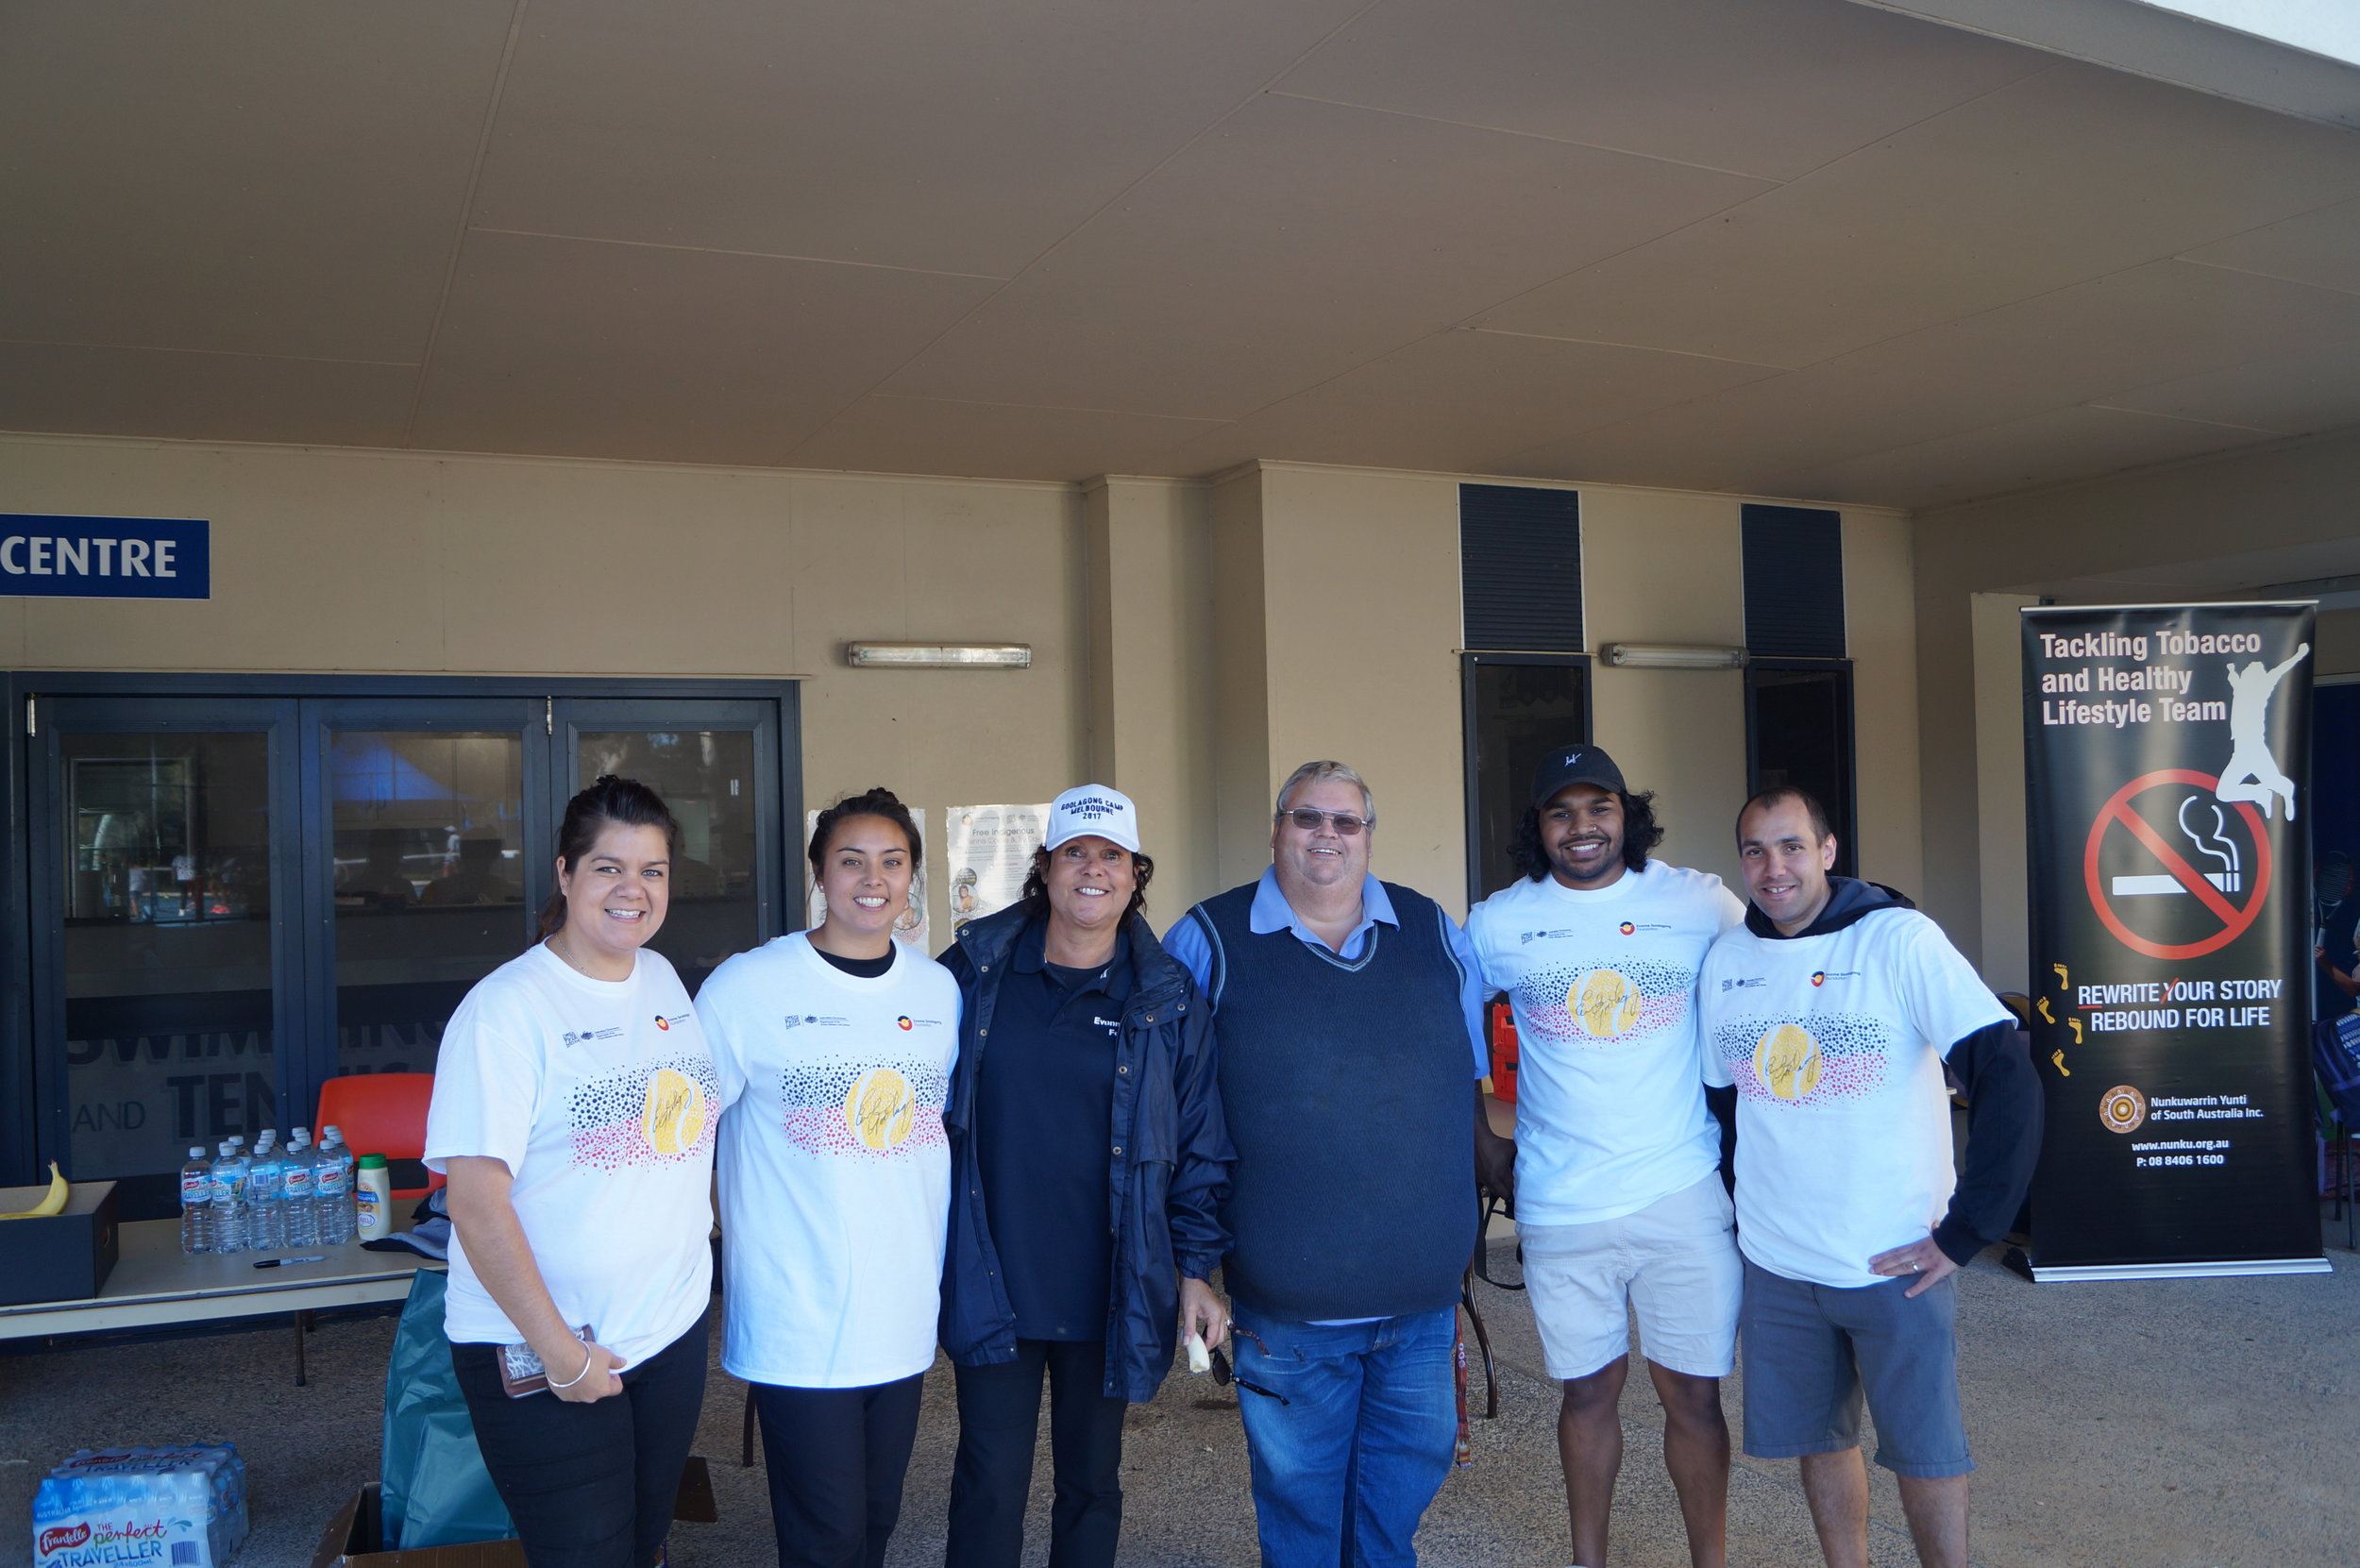 Thanks to our friends from the Aboriginal Health group Nunkuwarrin Yunti pictured here with Evonne. They provided  supplies for the kids and helped us serve our healthy lunch